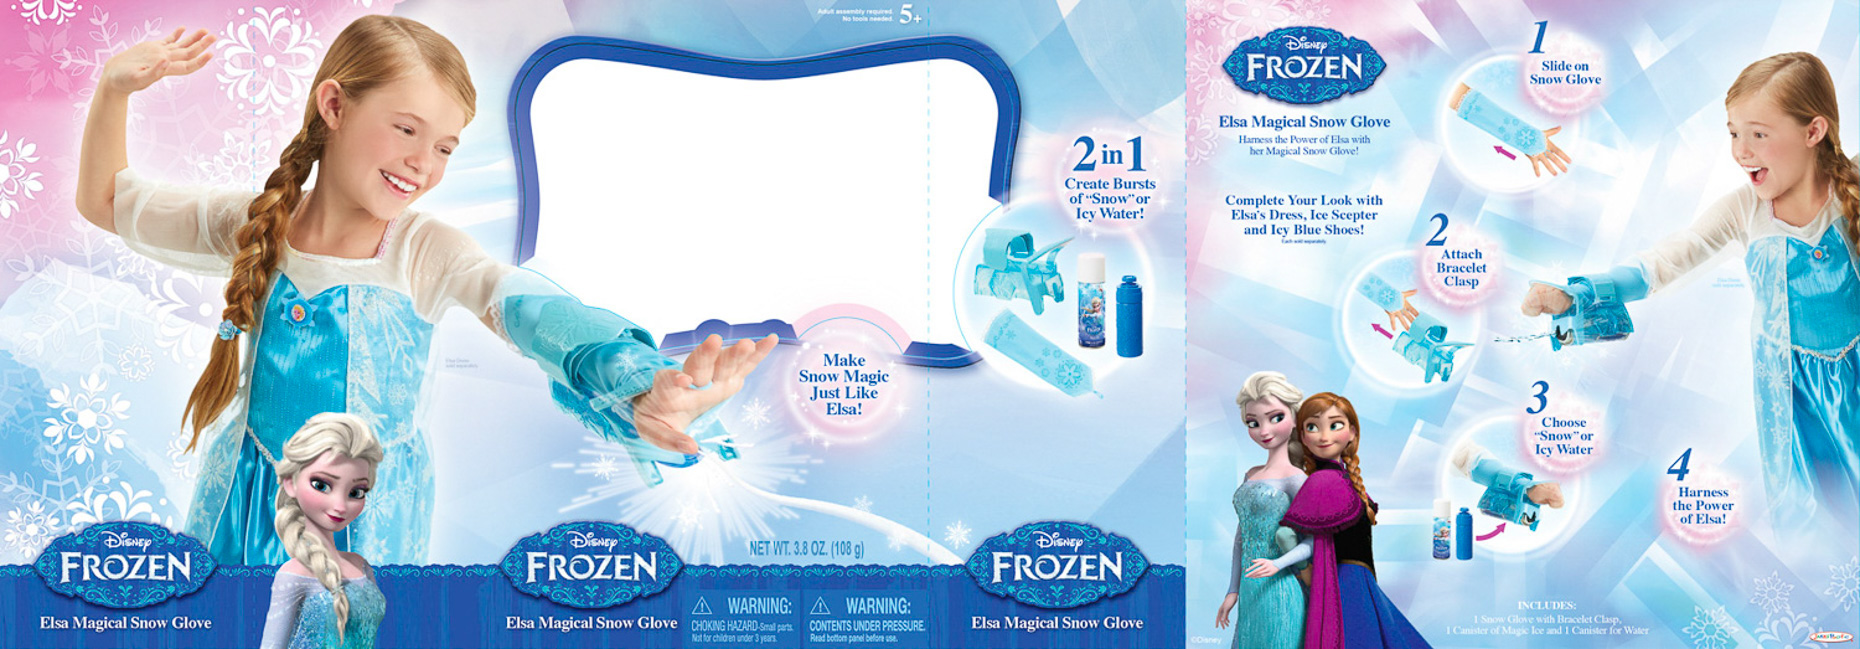 Frozen_95164_Elsa Magical Snow Glove_WB_F15